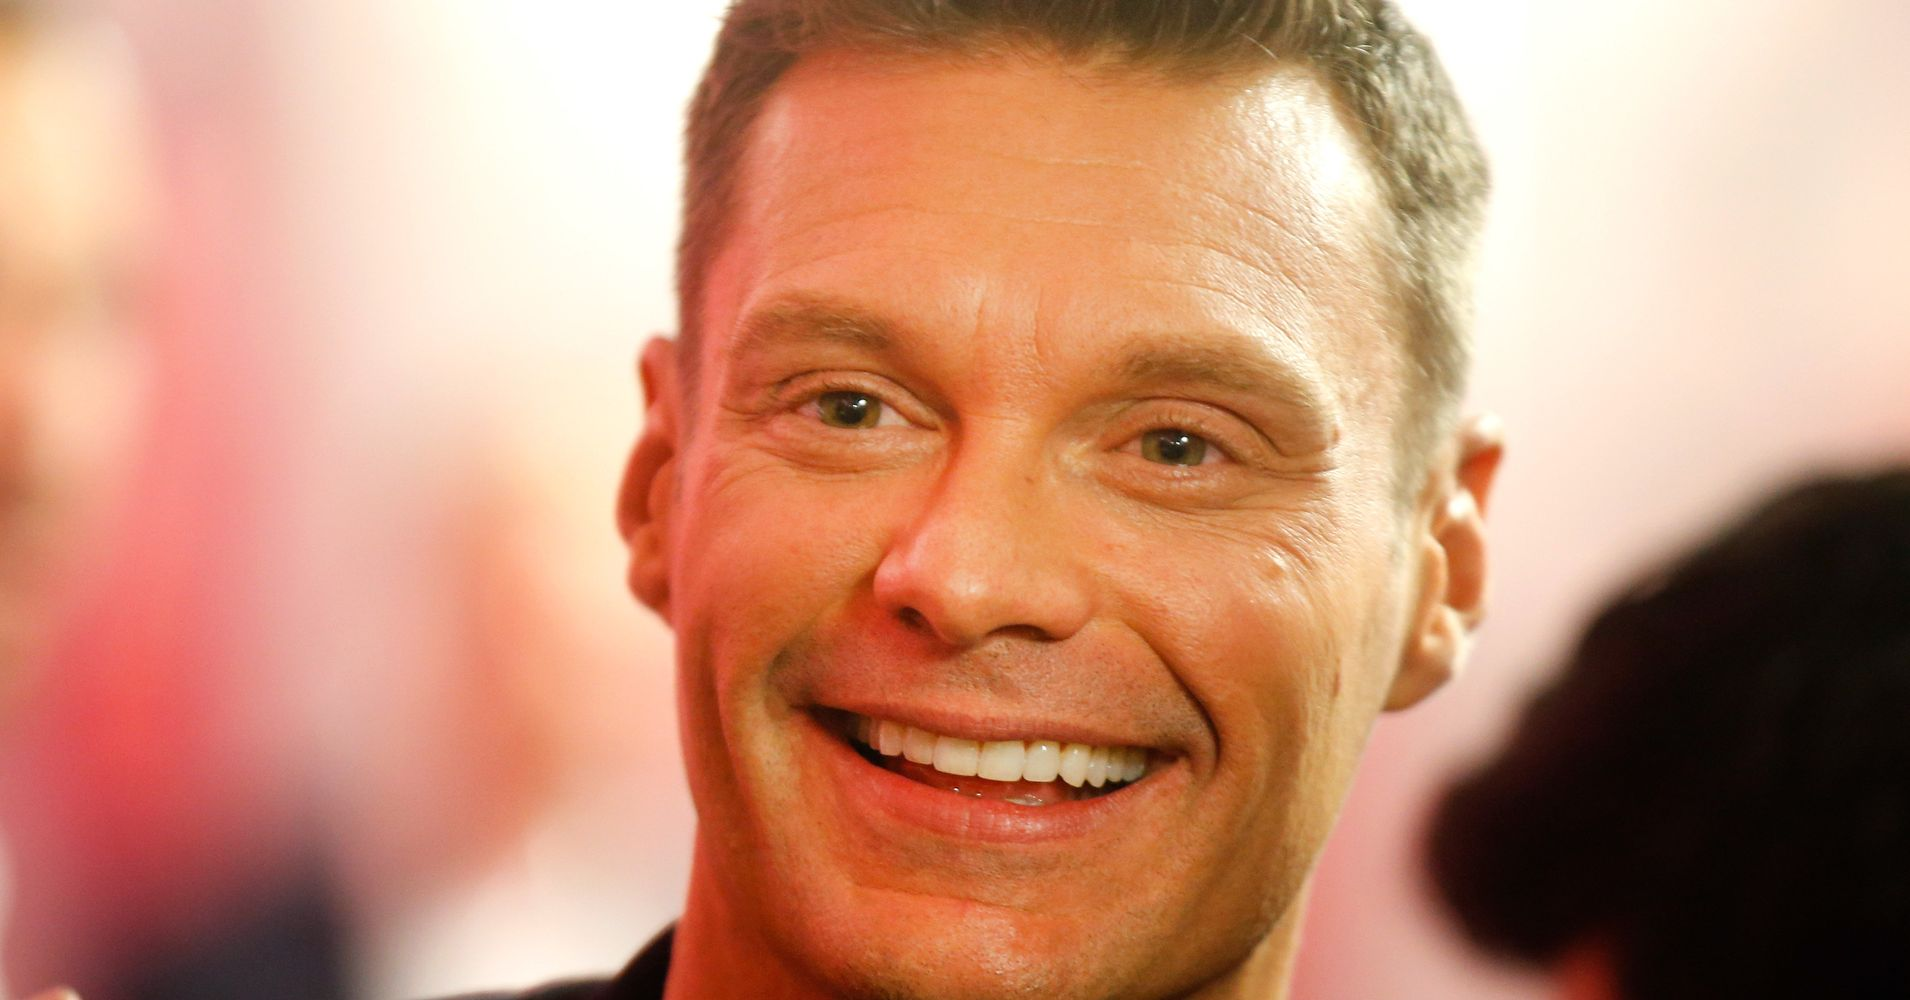 E! Entertainment Investigating Ryan Seacrest For Alleged 'Inappropriate' Behavior